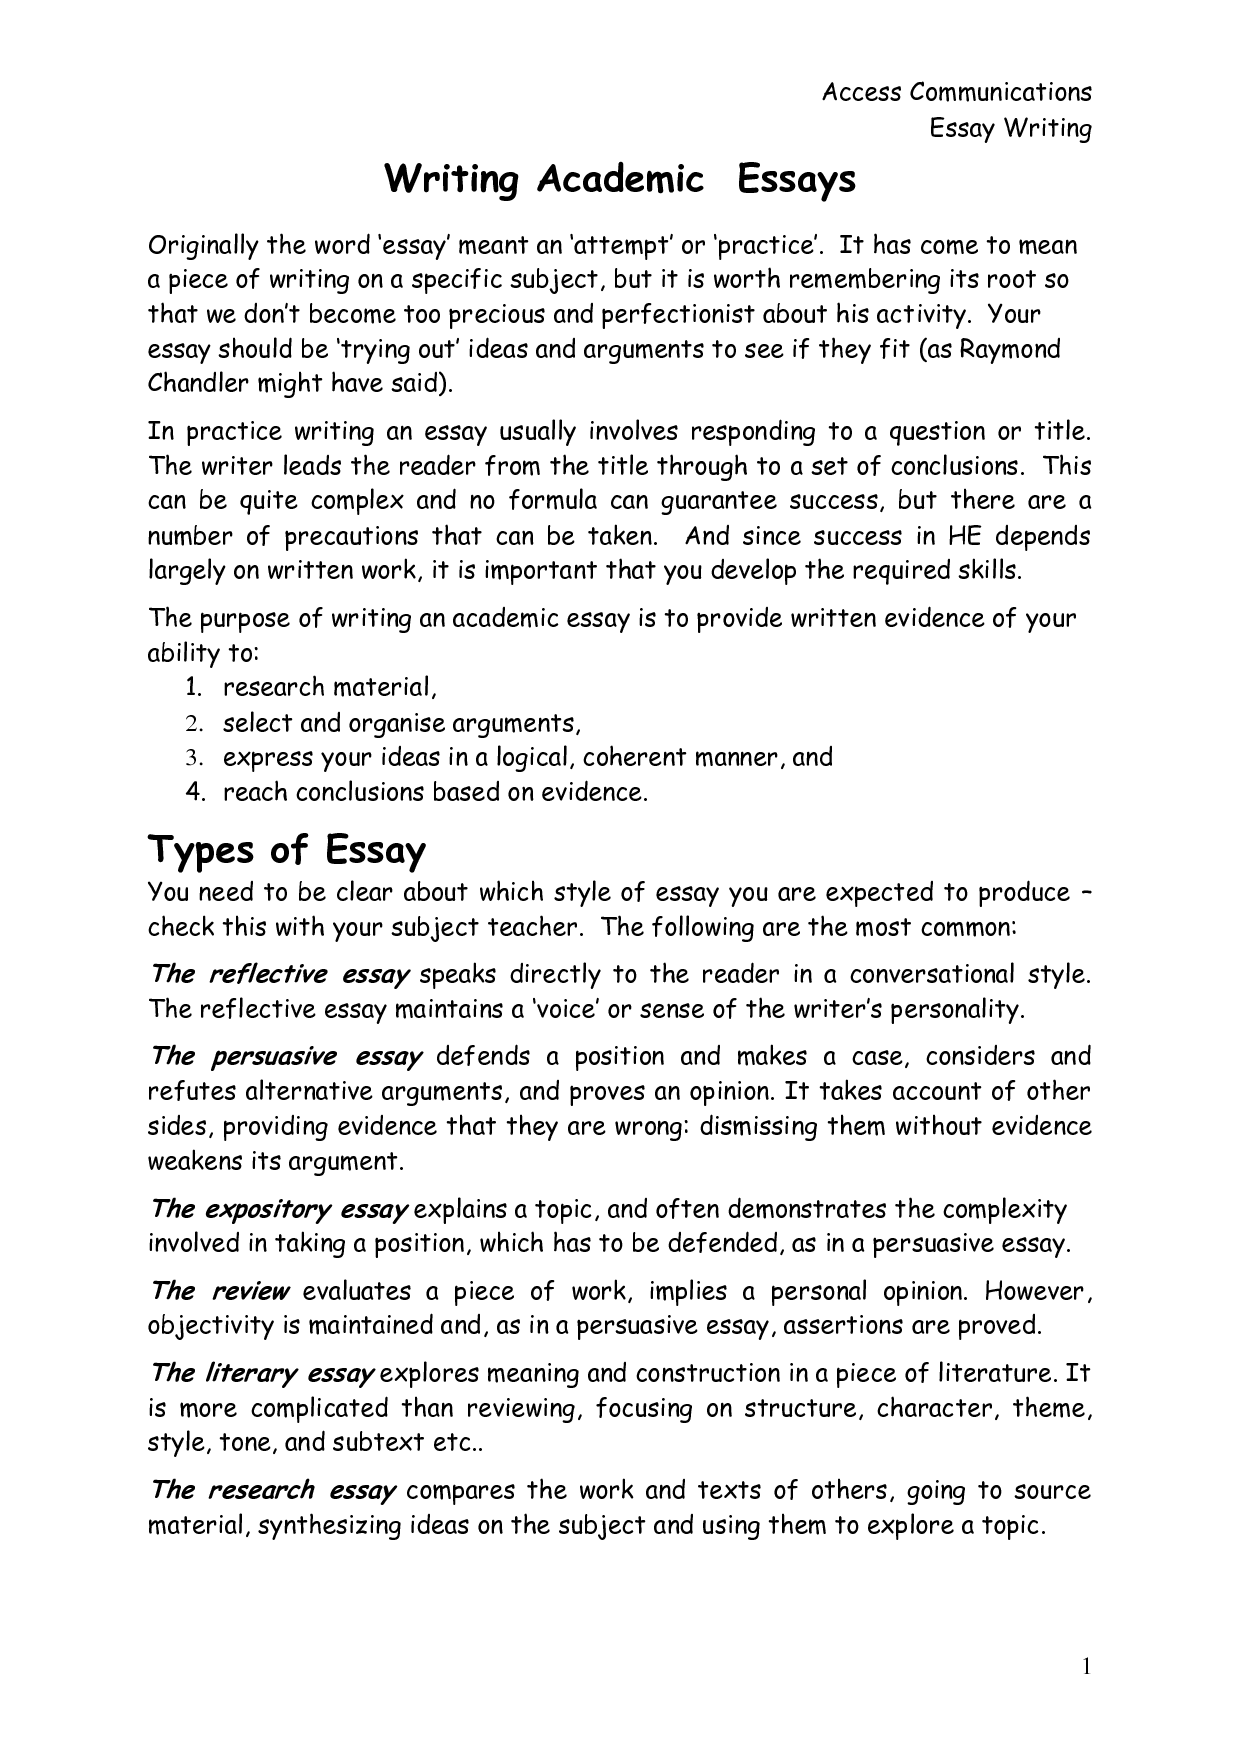 017 Essay Example Write For Me Amazing My Generator Free Online Full